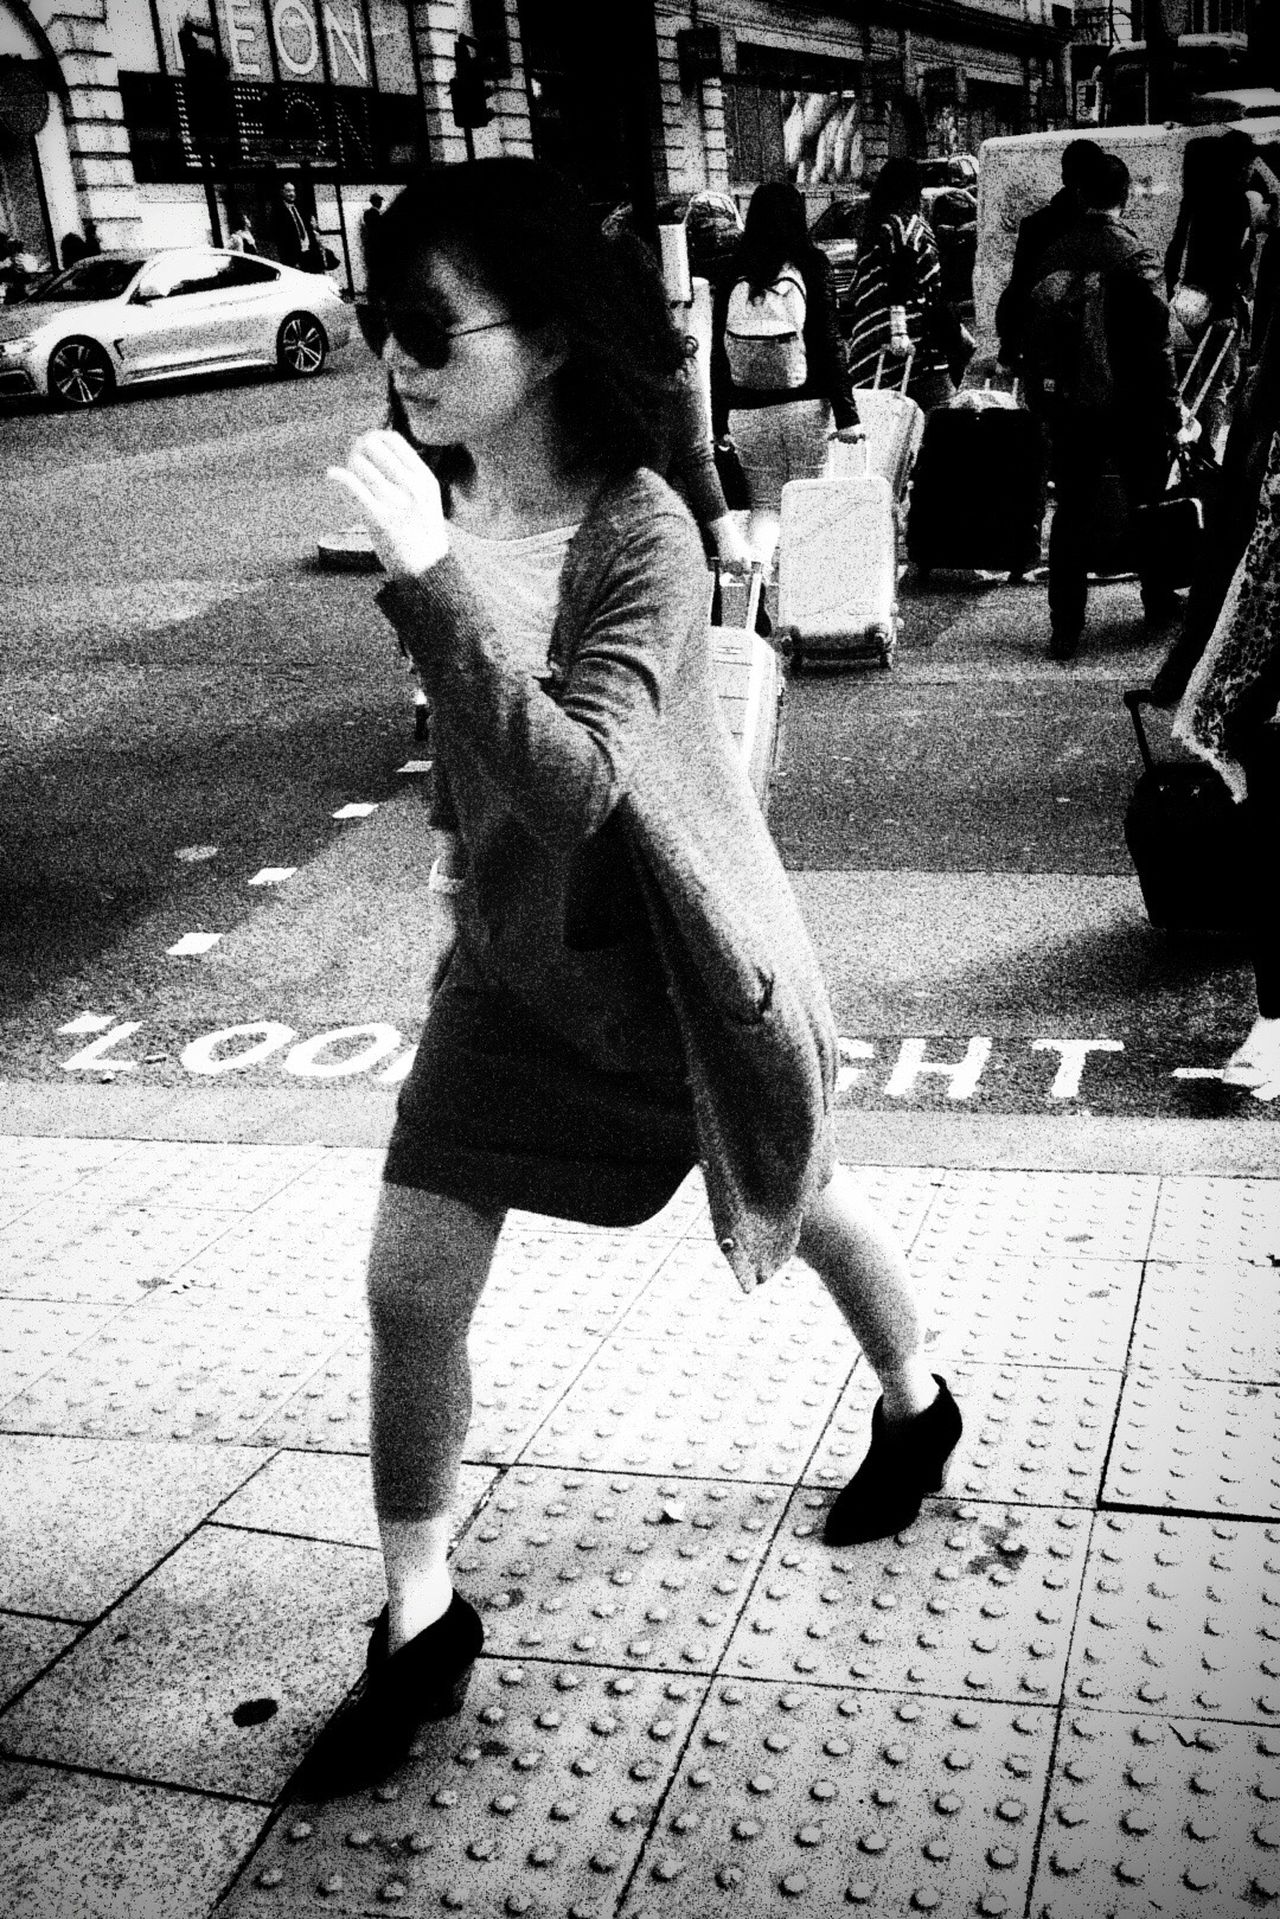 Streetphotography AMPt - Street Street IPhoneography Walking Around Streetphoto_bw Monochrome NEM Black&white Blancoynegro Blackandwhite Street Life Streettogs Flaneur Streetphotography_bw NEM Street Life In Motion High Contrast Enjoying Life Girls Girl